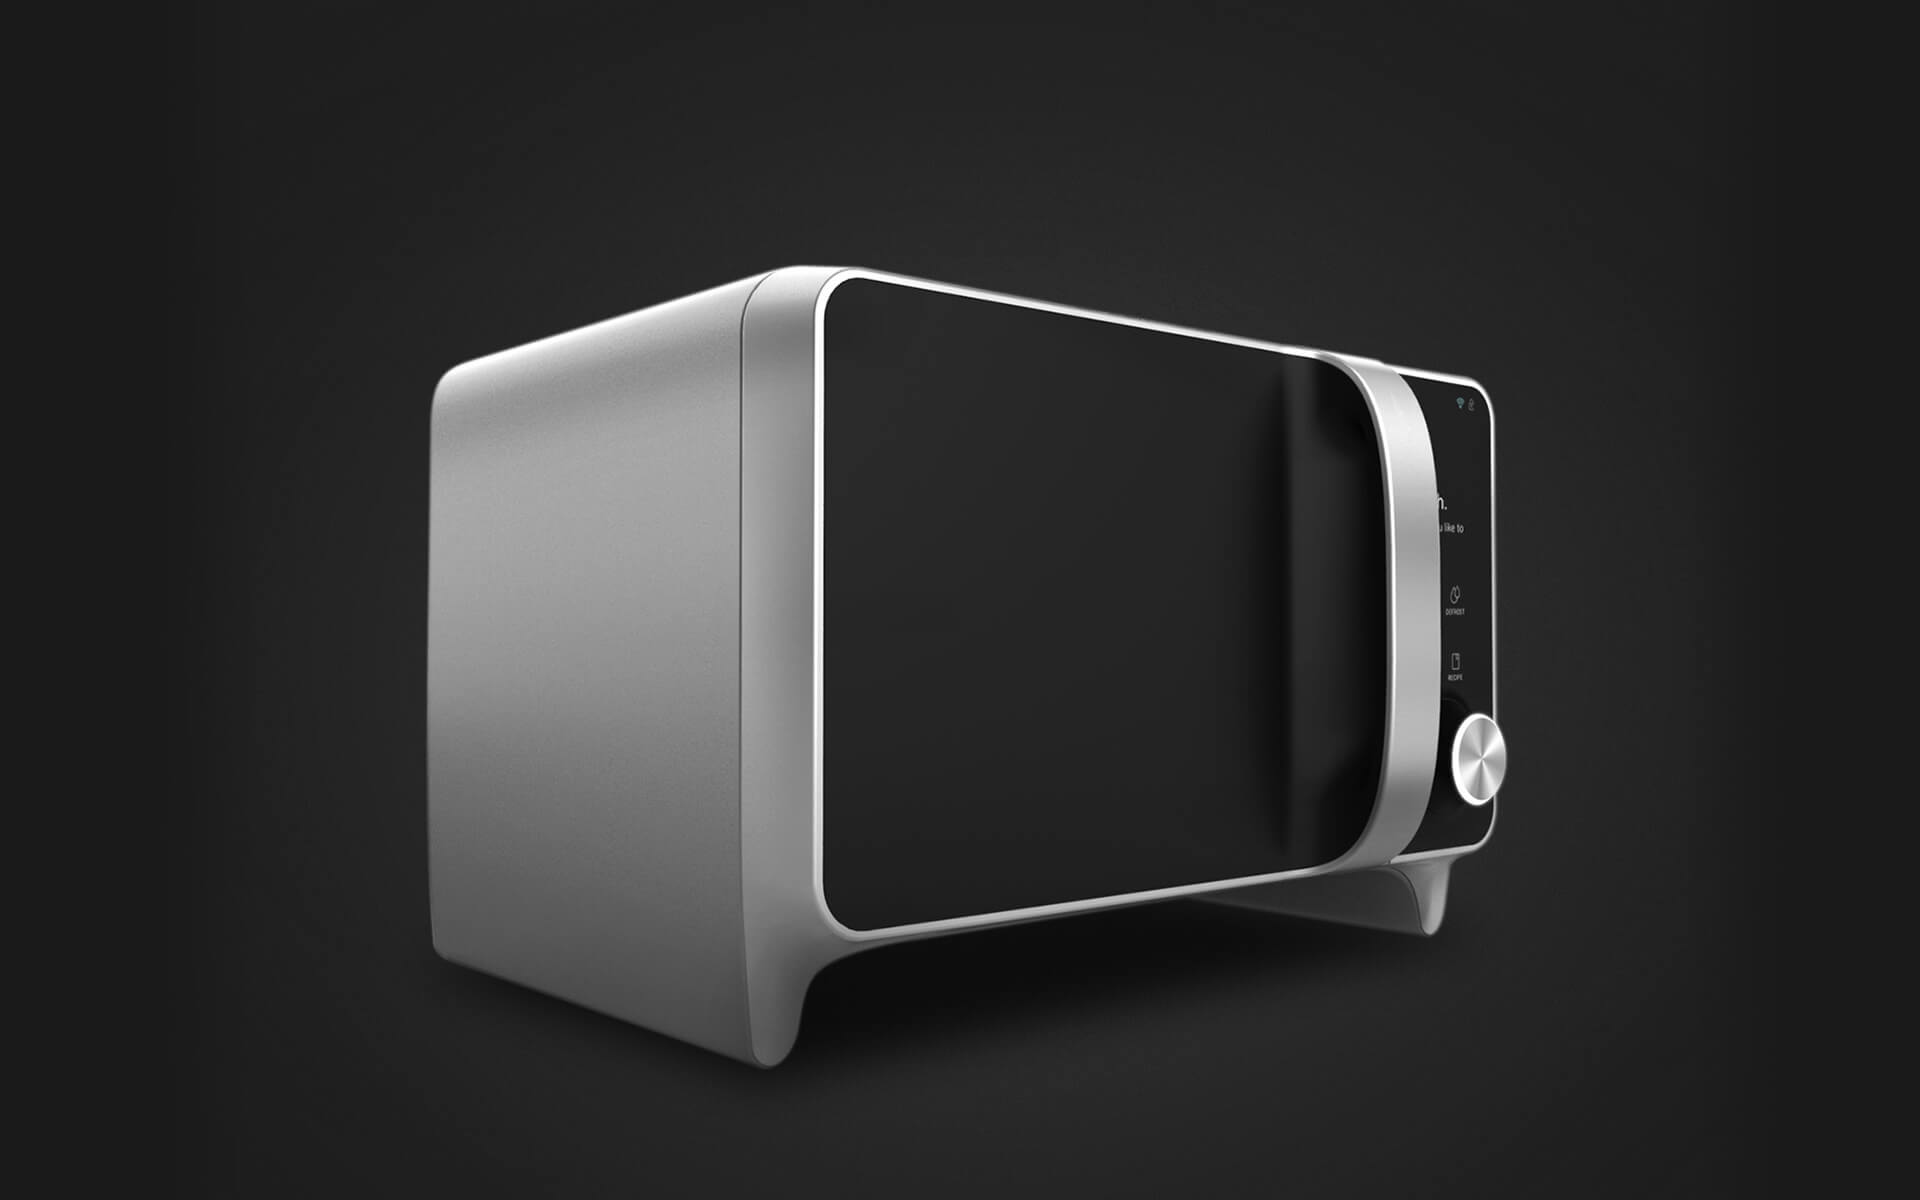 Smart Microwave-A microwave which doubles up with a cooking assistant was one of the goals of the project